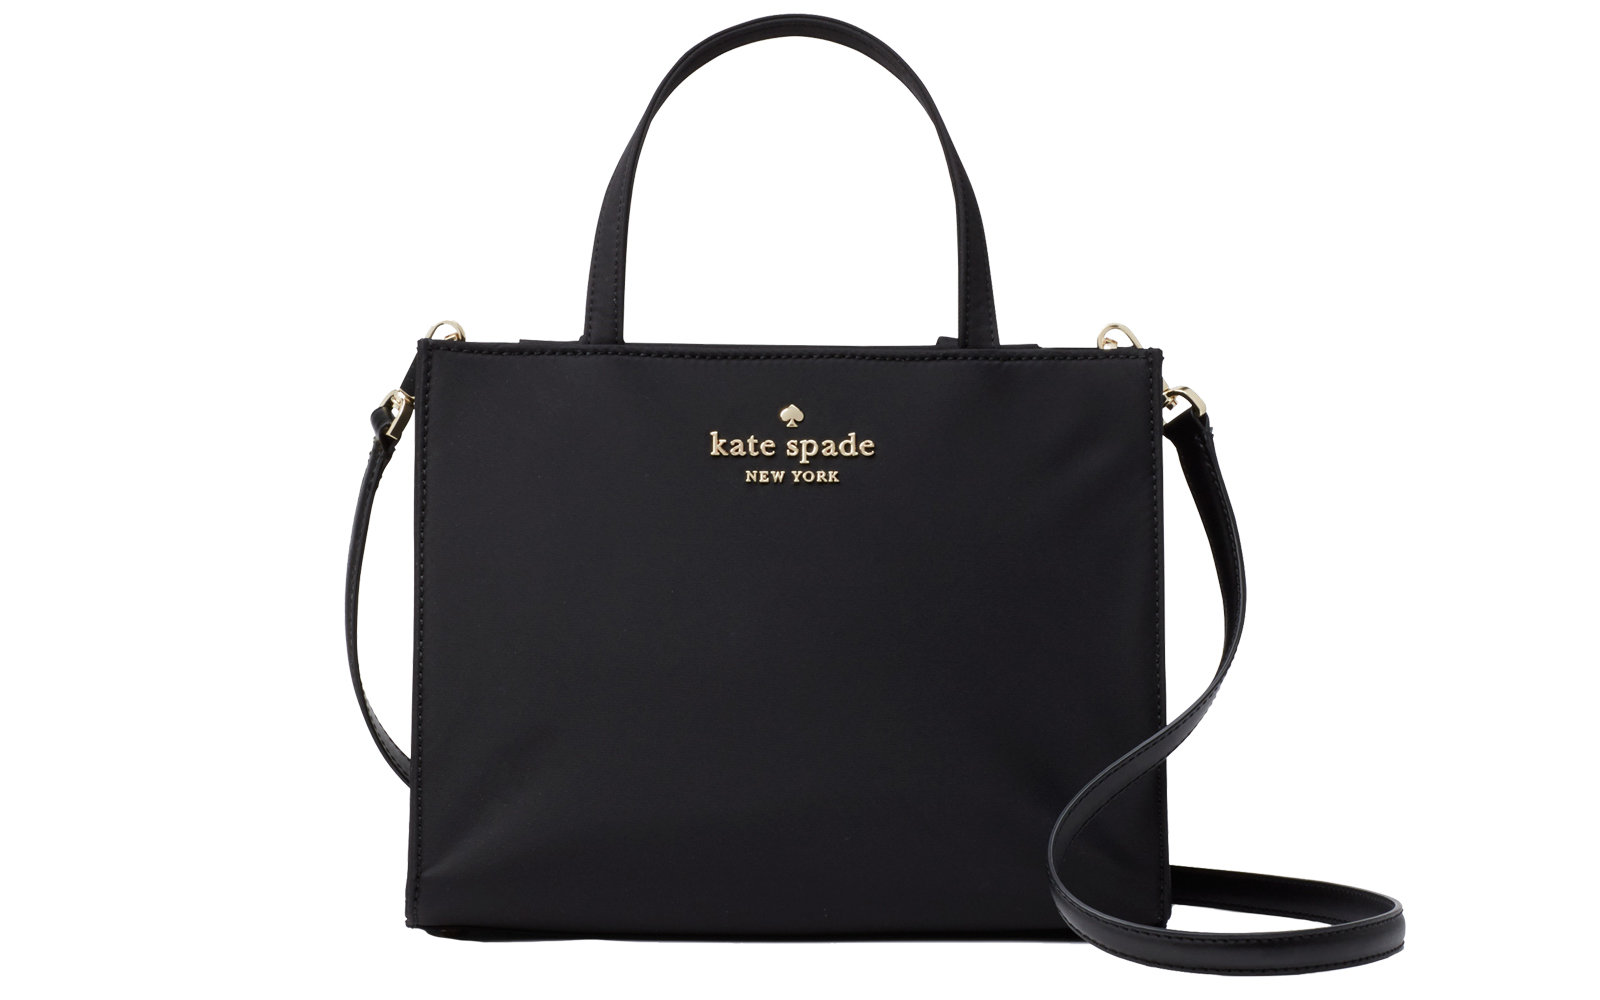 Kate Spade's Most Iconic '90s Bag Is Finally Back | Travel ...